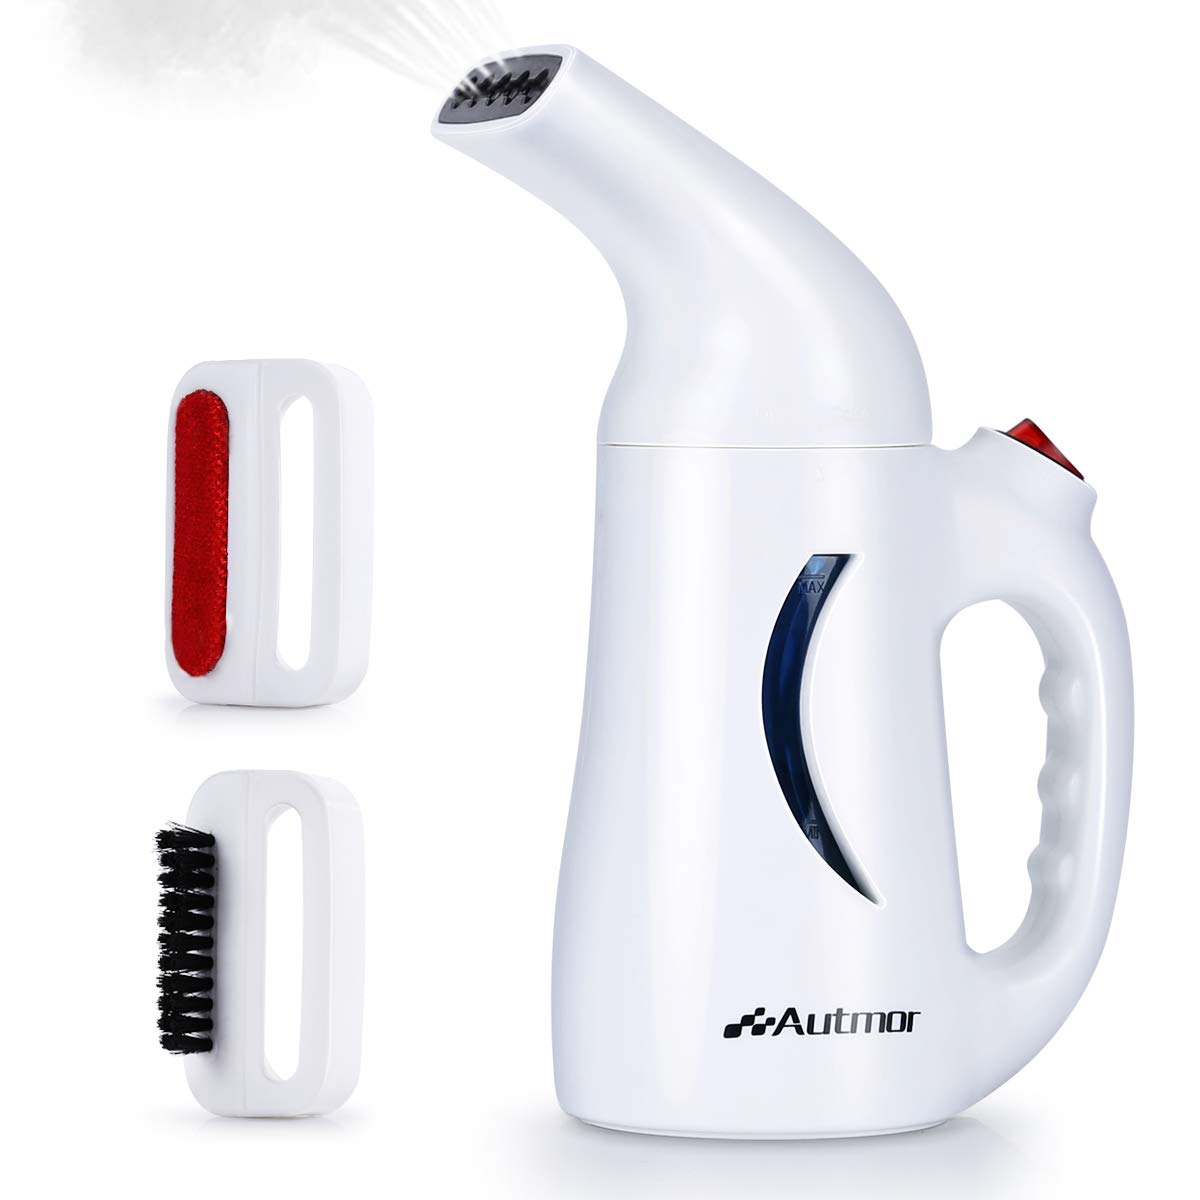 Manfiter Steamer Handheld for Clothes Garment Clothing Soft Garment Hand Steamers for Travel Home 130ML